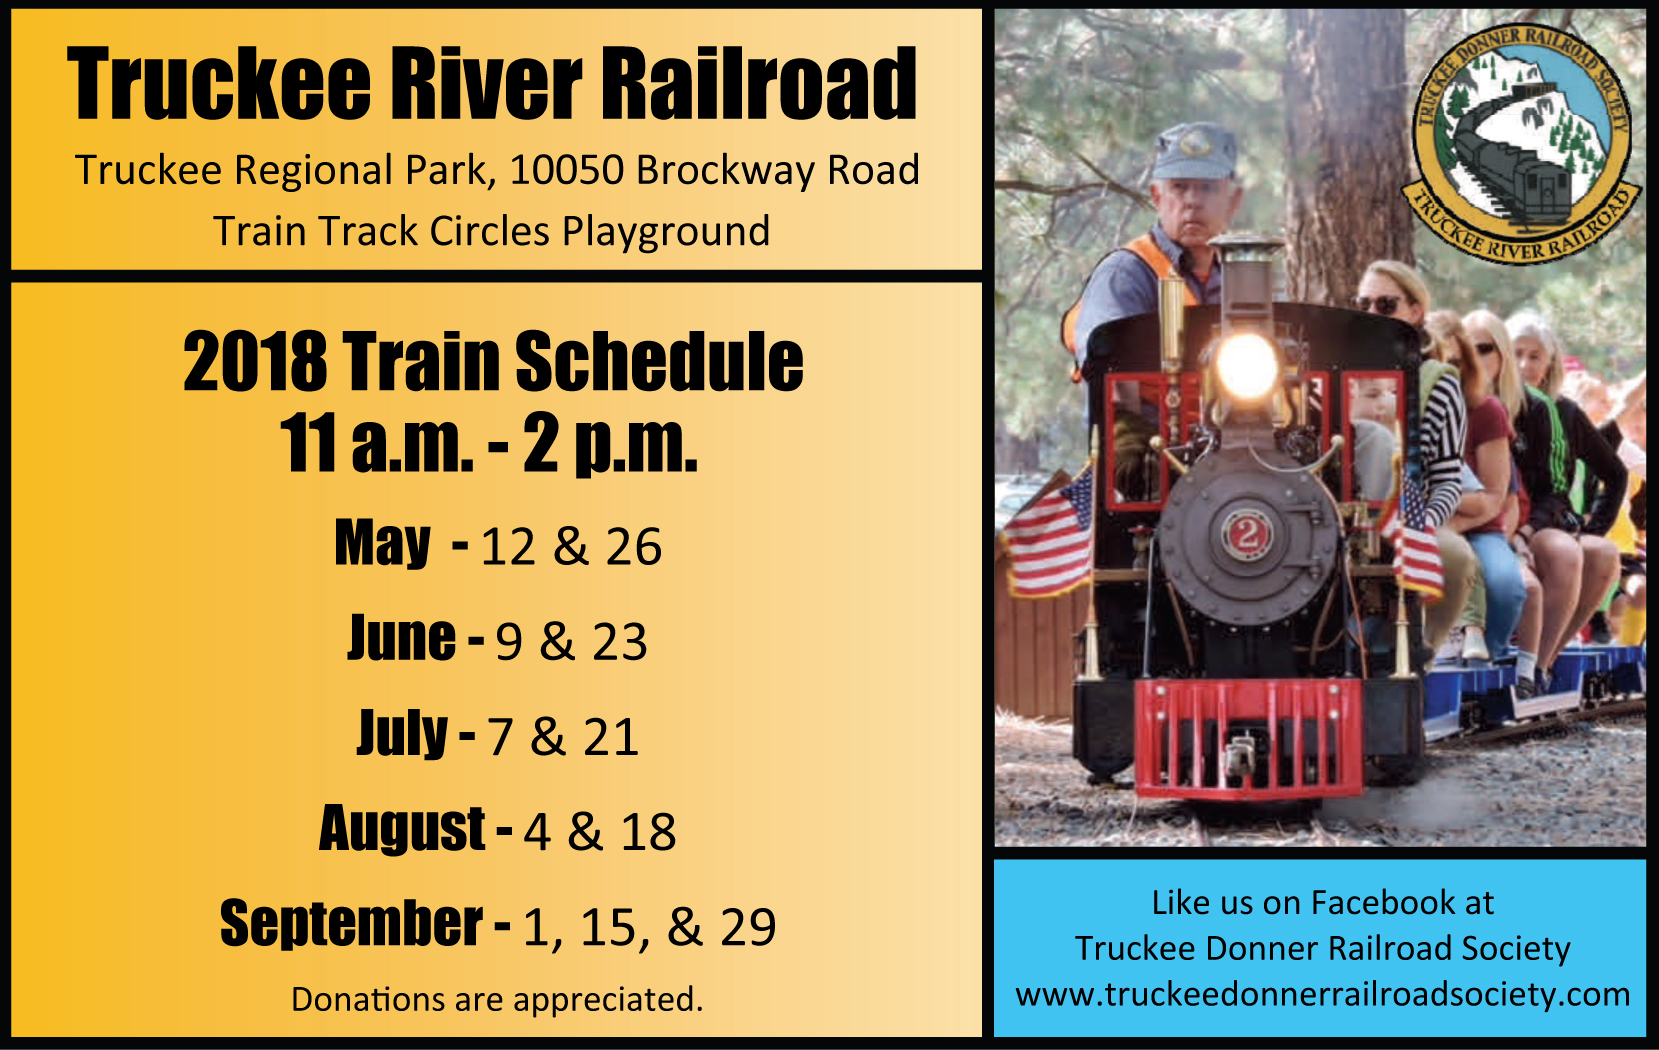 Truckee Donner Railroad Society (TDRS) Home